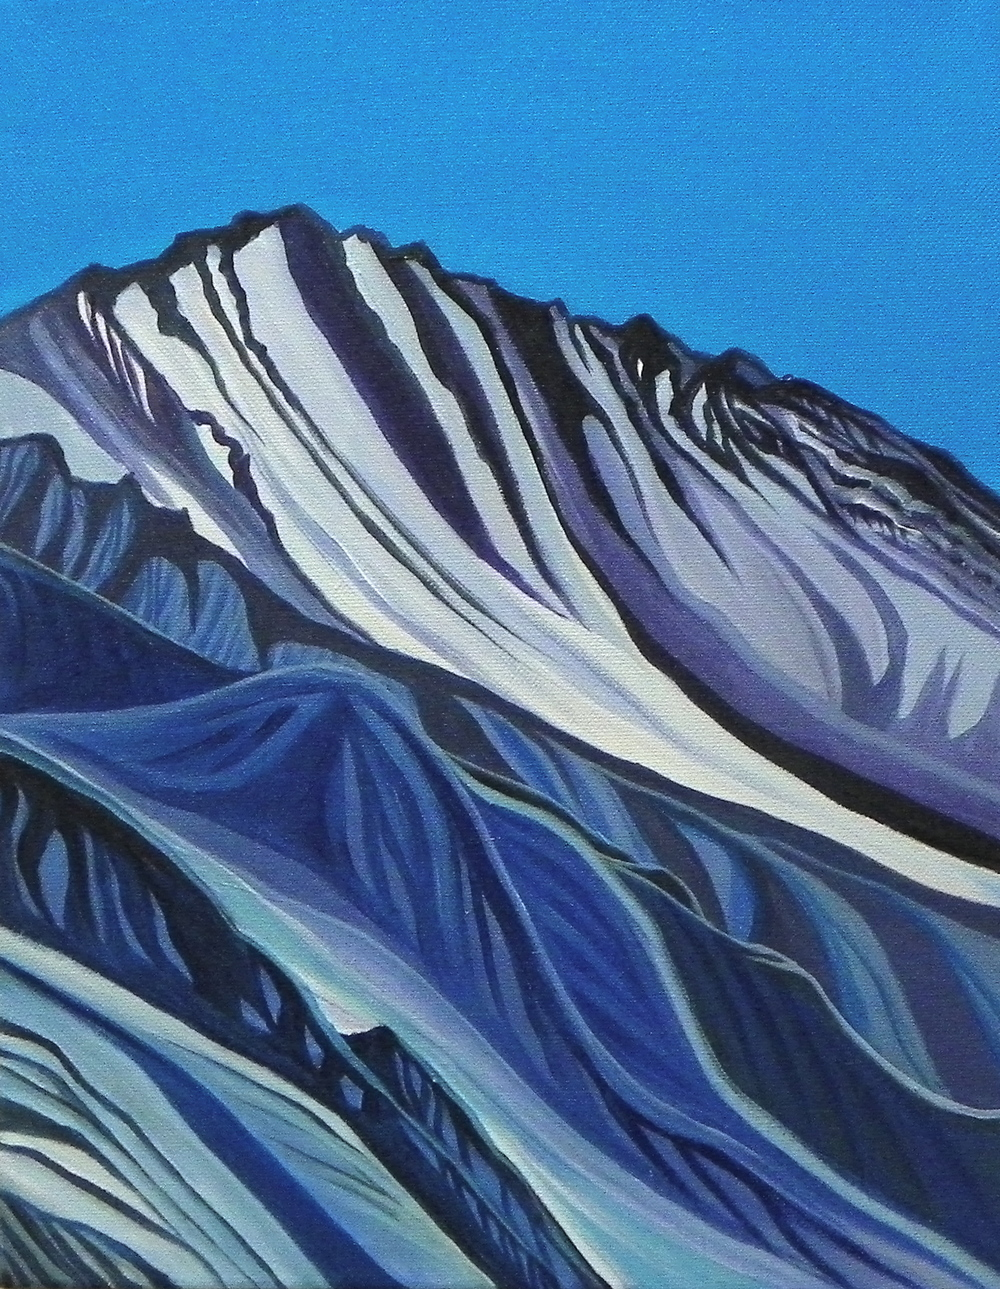 "Purple Mountain Majesty -   Acrylic   on canvas - 14"" x 11"" - 2014"